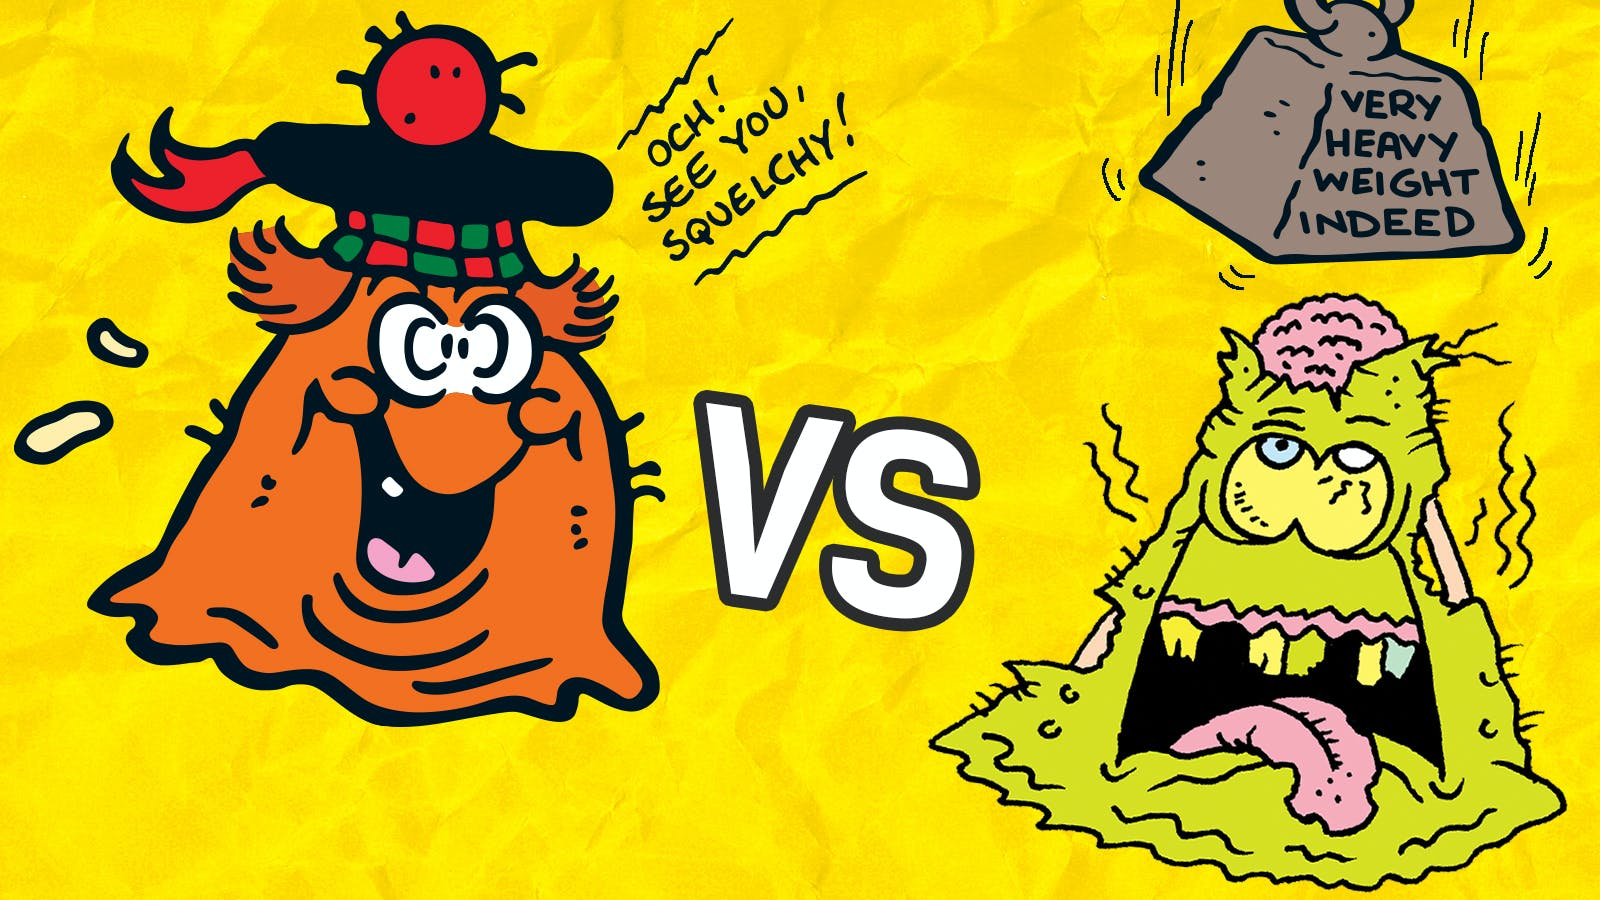 Which Squelchy would you want as your sidekick - Minx or Mishap?